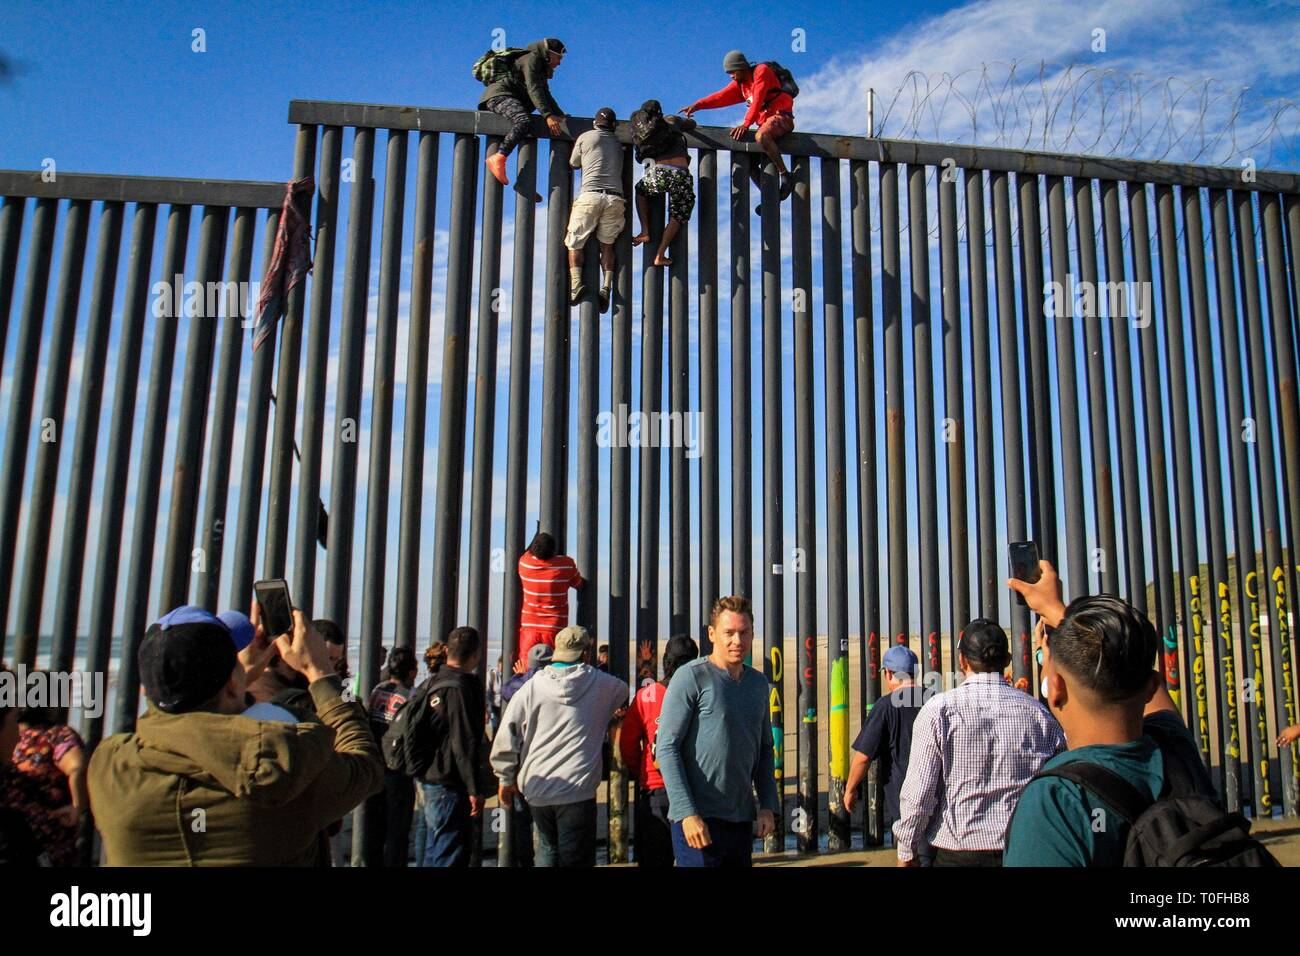 Baja California, Mexico. 19th Mar, 2019. Dozens of migrants try to enter the United States illegally from the Playas Tijuana area in the Mexican state of Baja California, Mexico, 19 March 2019. Around 16.00 local time (23.00 GMT), the migrants, almost a hundred according to the witnesses, arrived at the seashore in the Mexican town to try to jump the metal fence that in this area delimits the border between the two countries. EFE/Joebeth Terriquez Credit: EFE News Agency/Alamy Live News - Stock Image